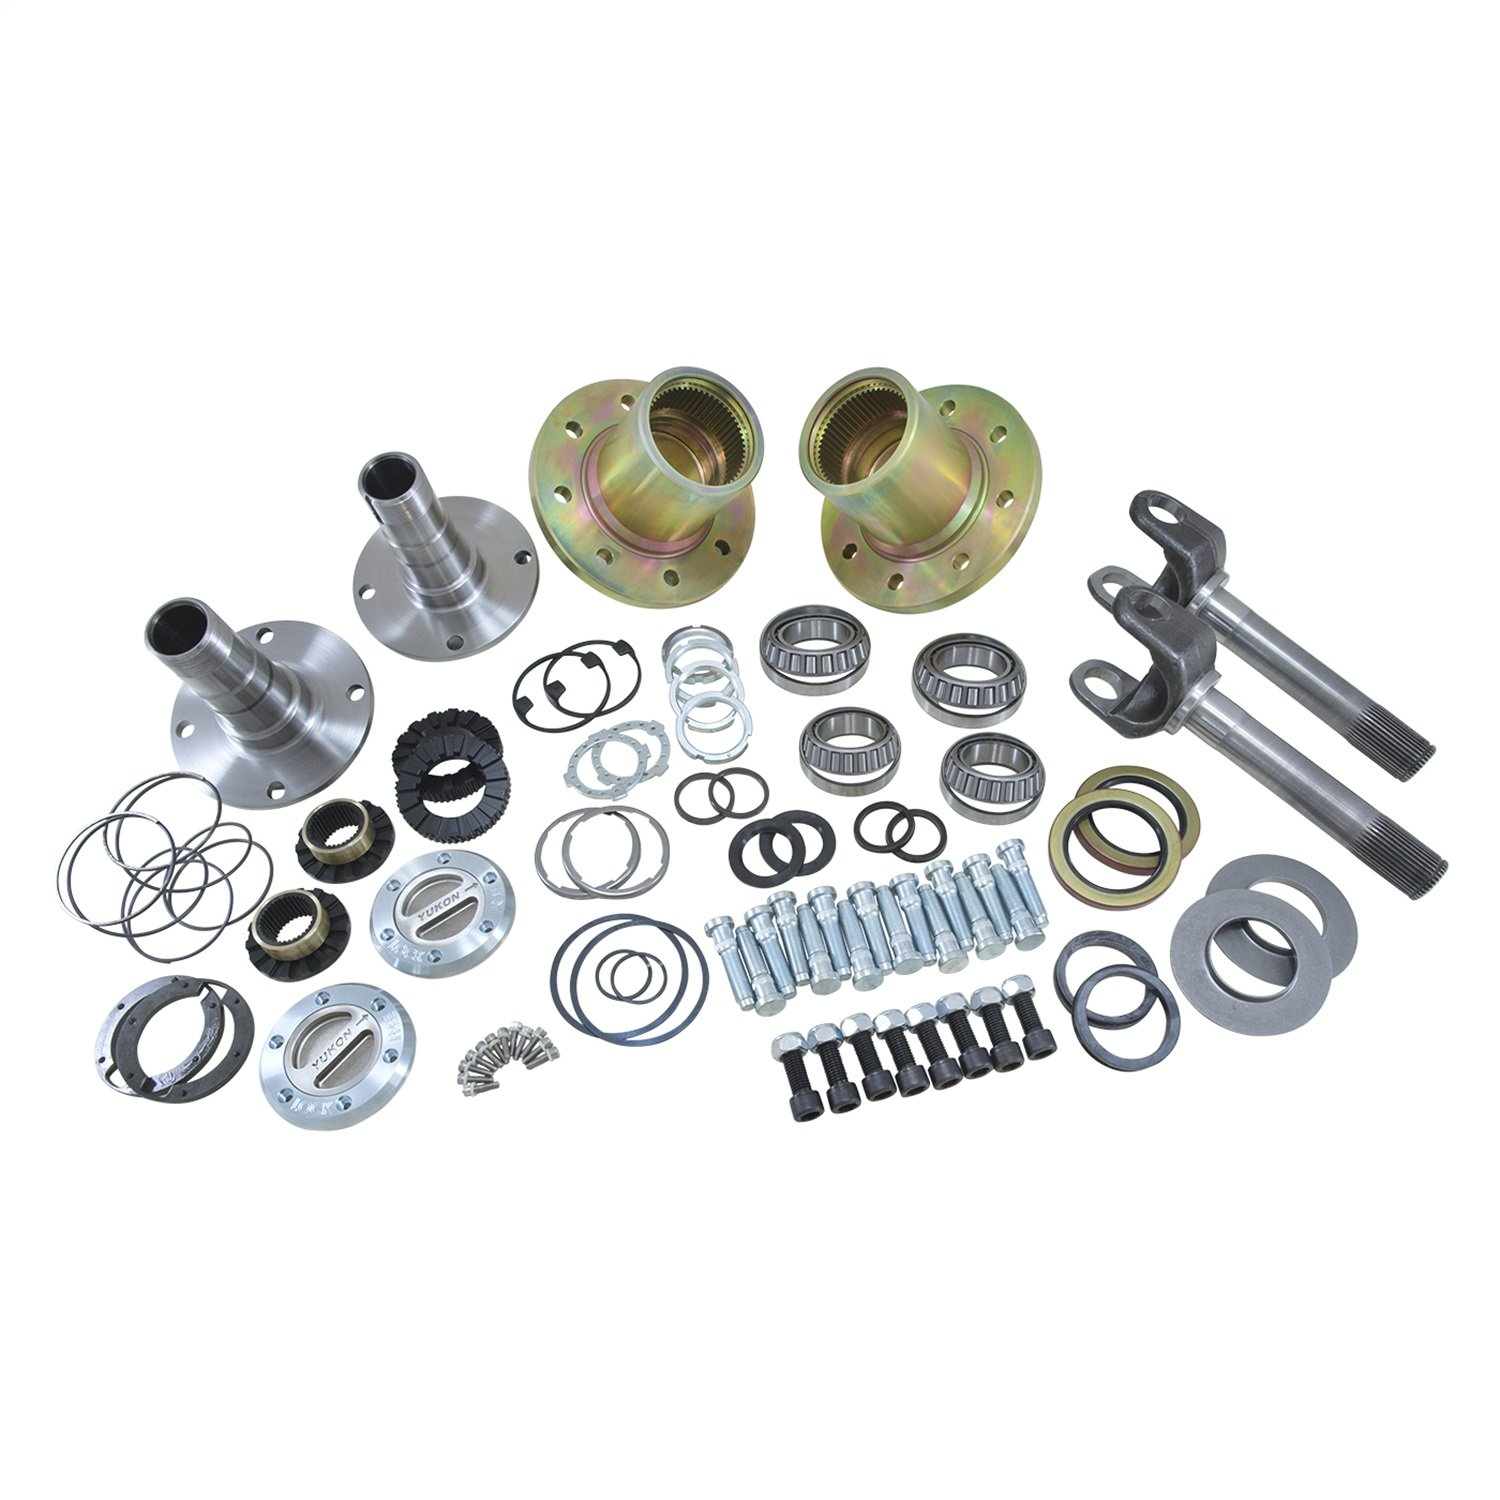 Yukon (YA WU-03) Spin Free Locking Hub Conversion Kit for Dodge Dana 60 Differential Yukon Gear